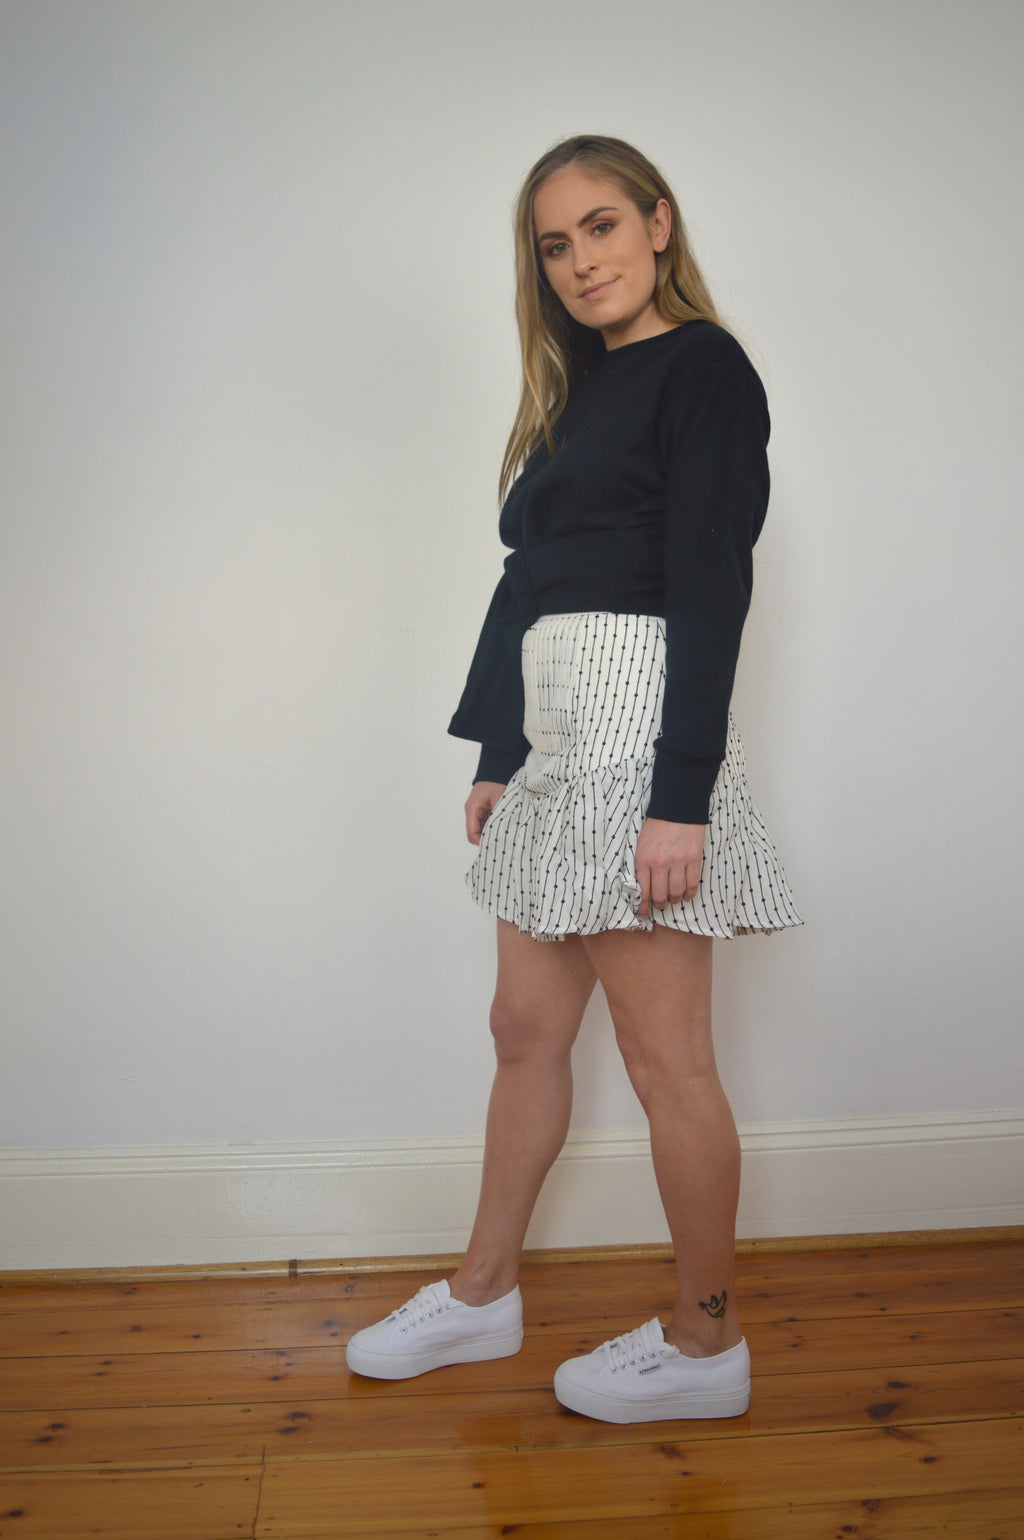 Even Love Skirt C/MEO Collective